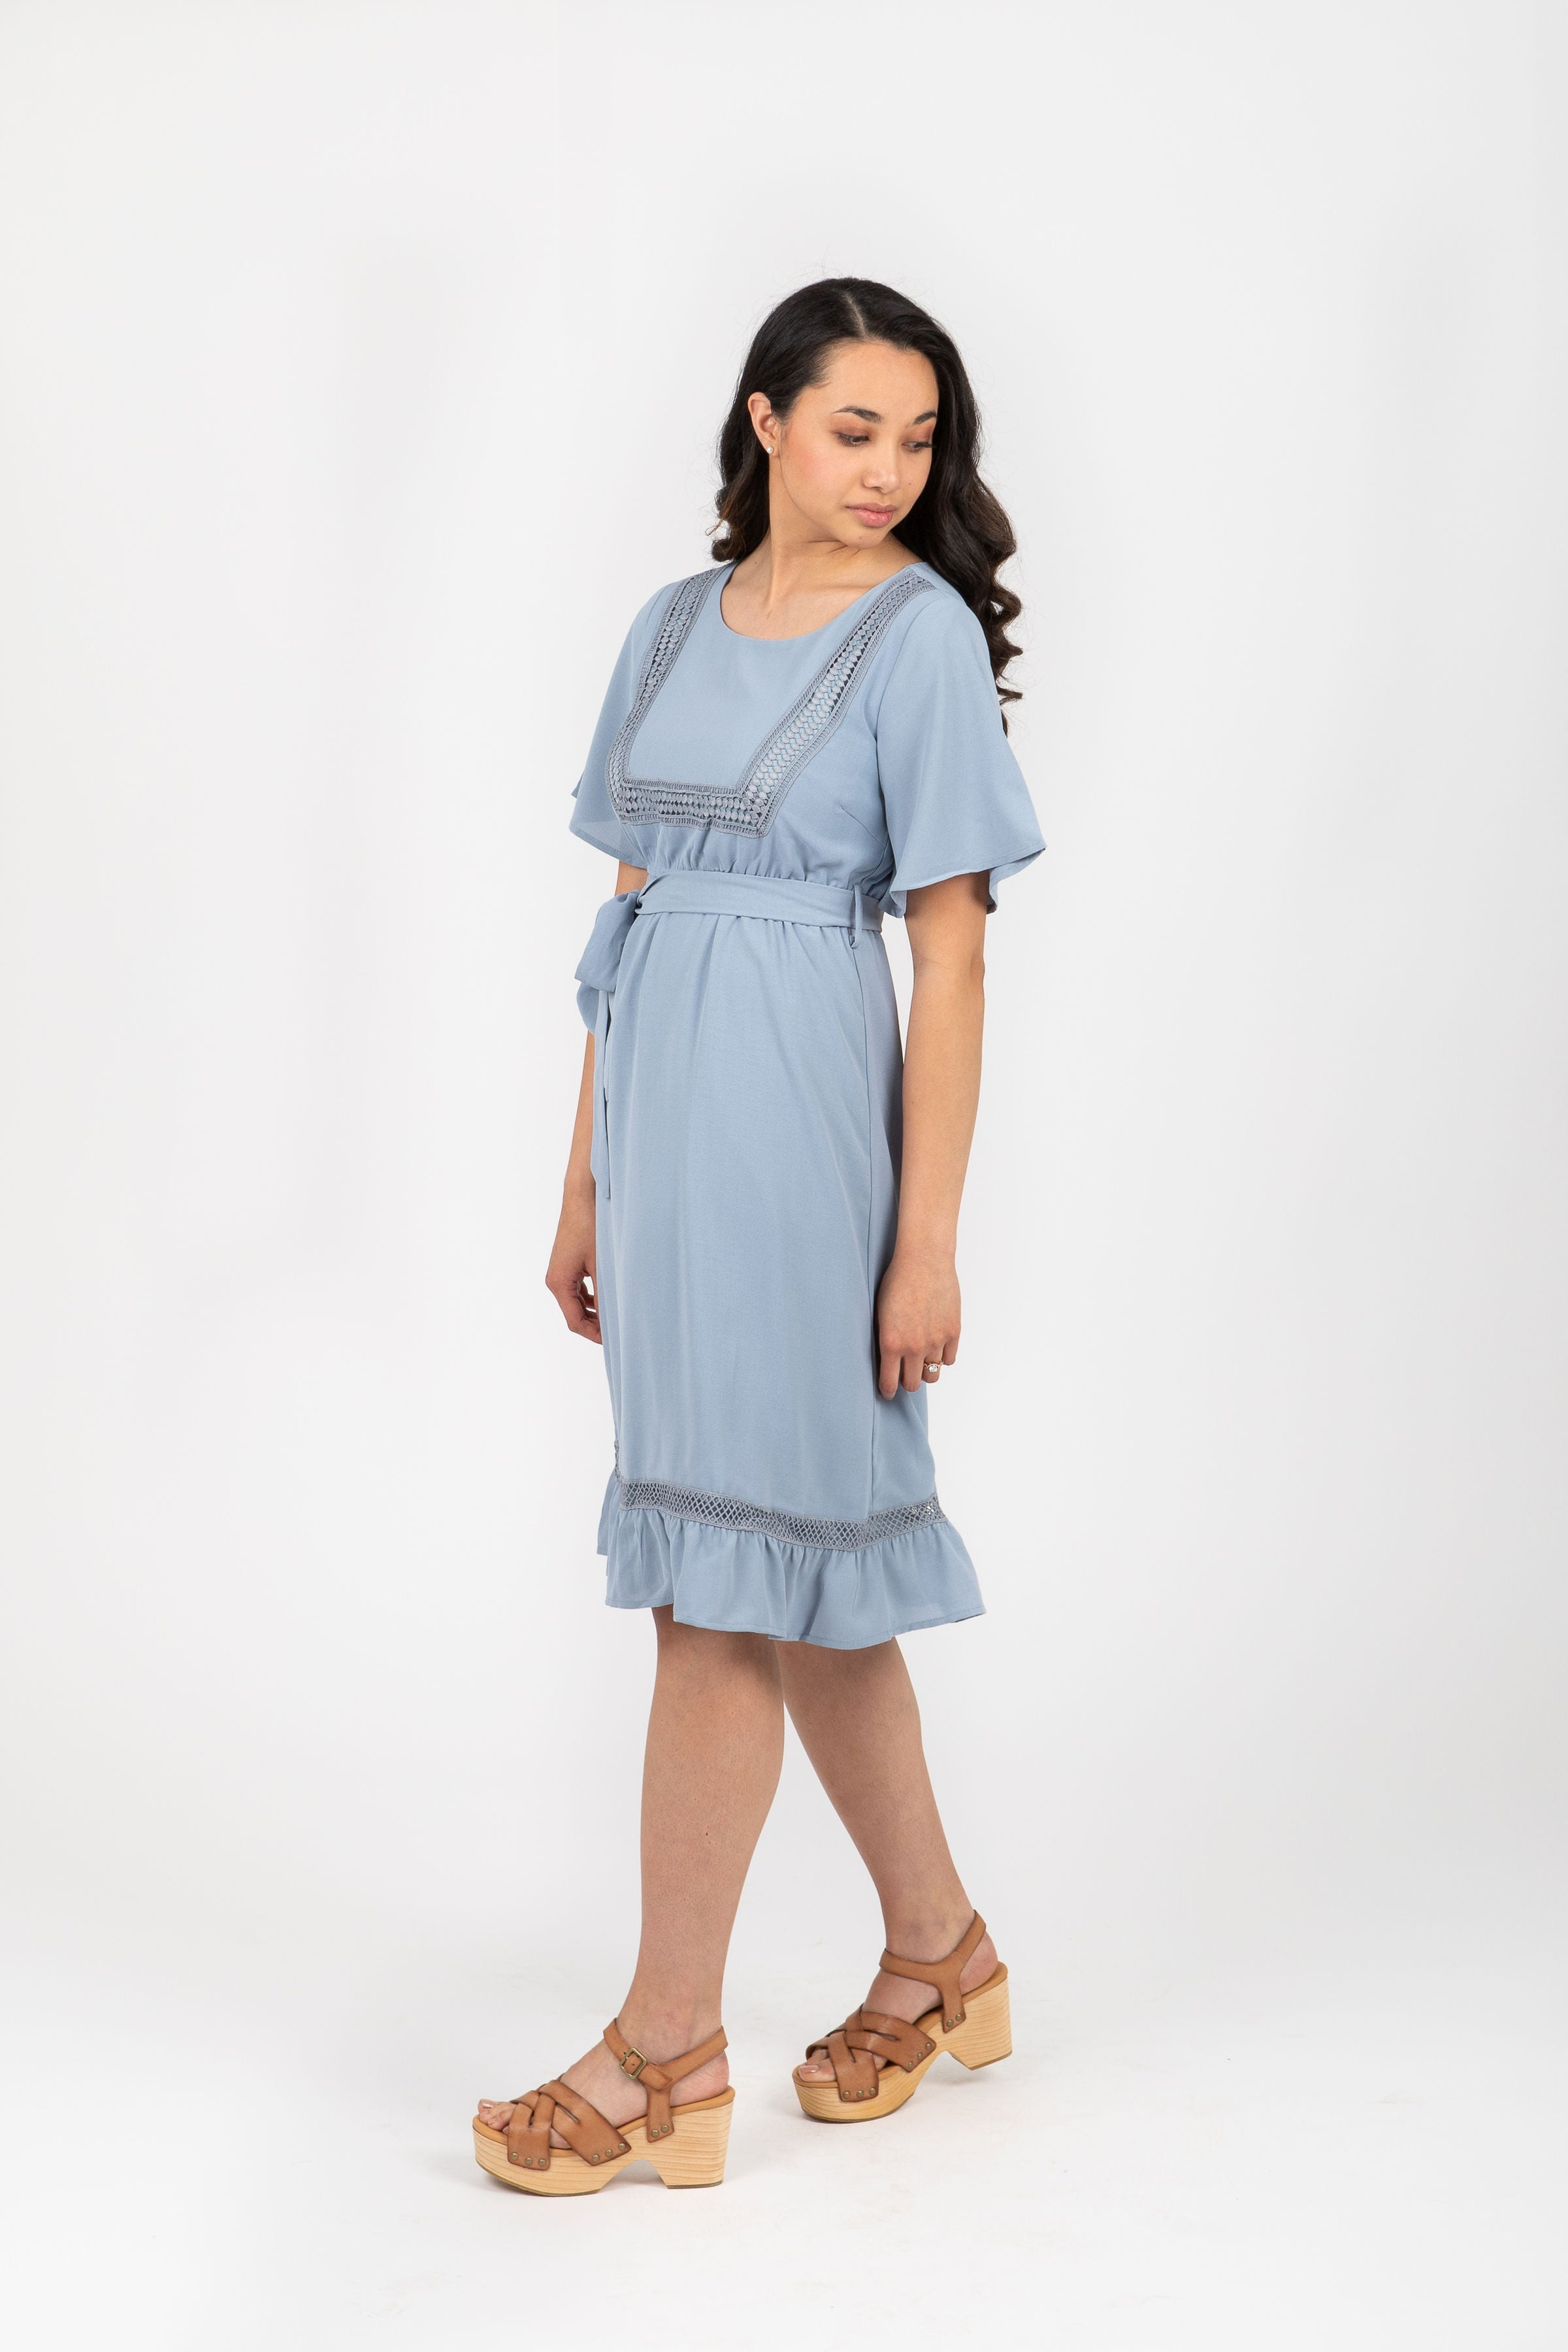 The Skyler Detail Ruffle Dress in Periwinkle